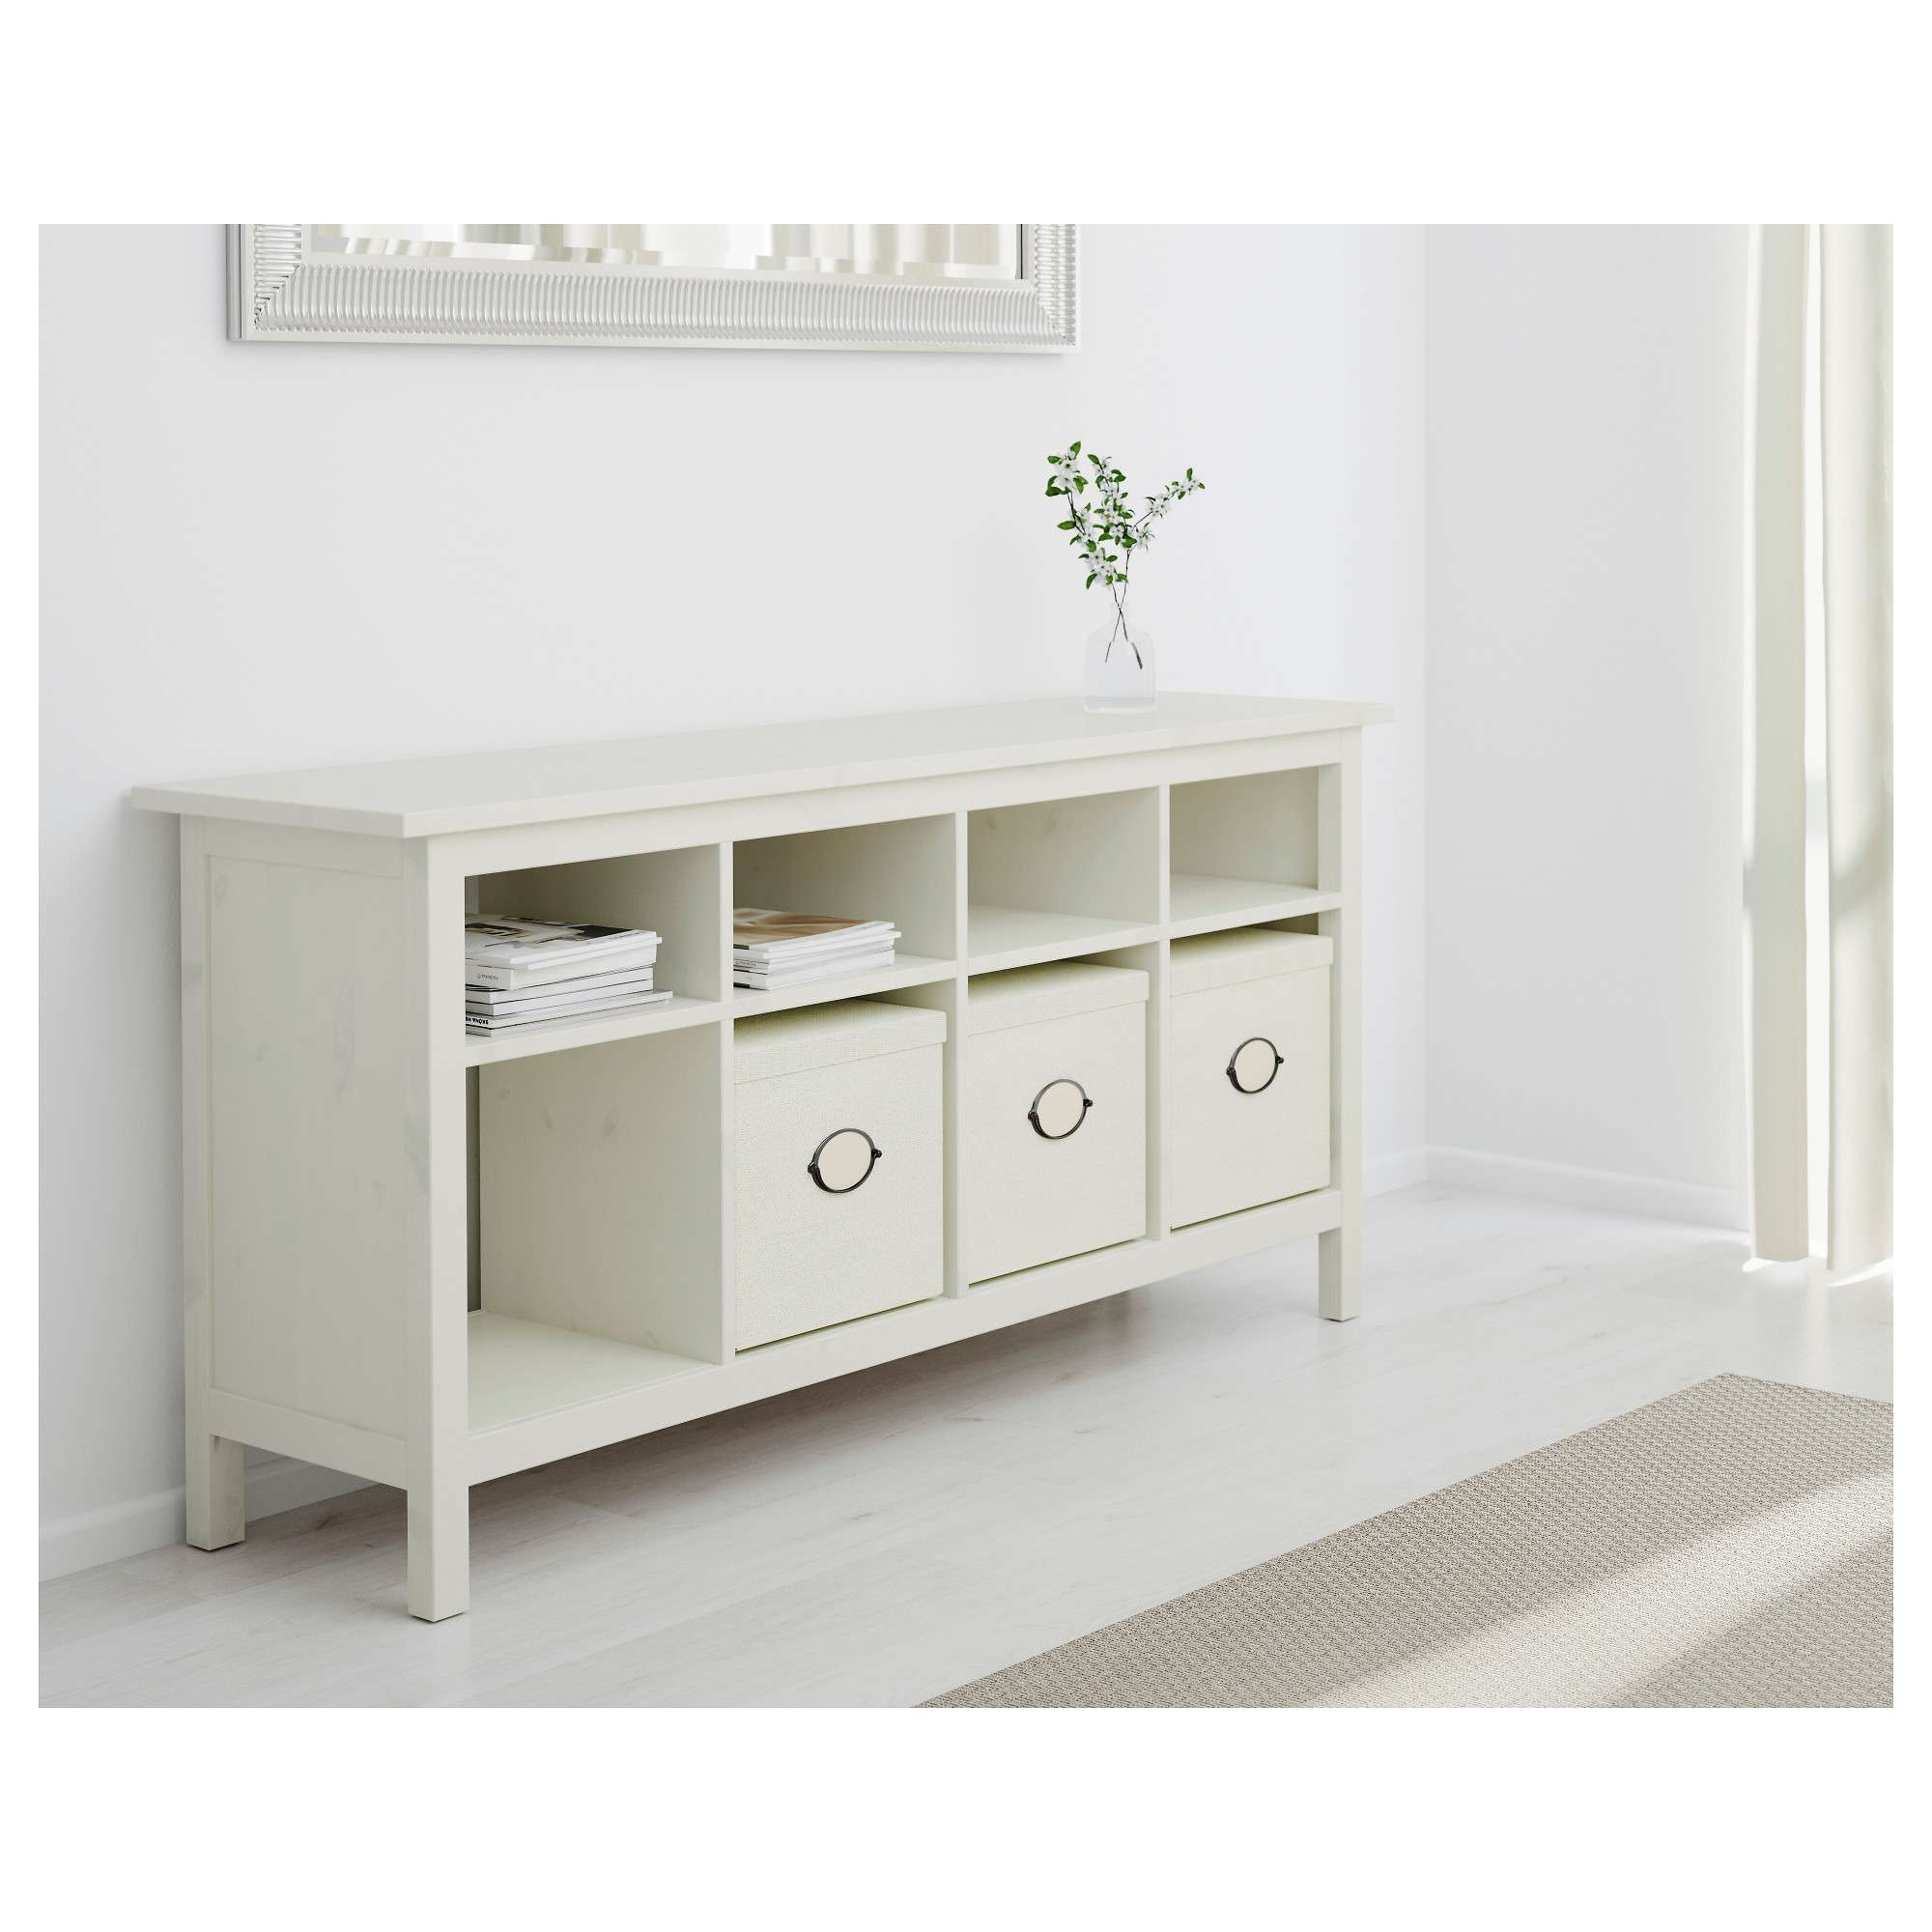 Hemnes Console Table White Stain 157X40 Cm – Ikea With Hemnes Sideboards (View 2 of 20)